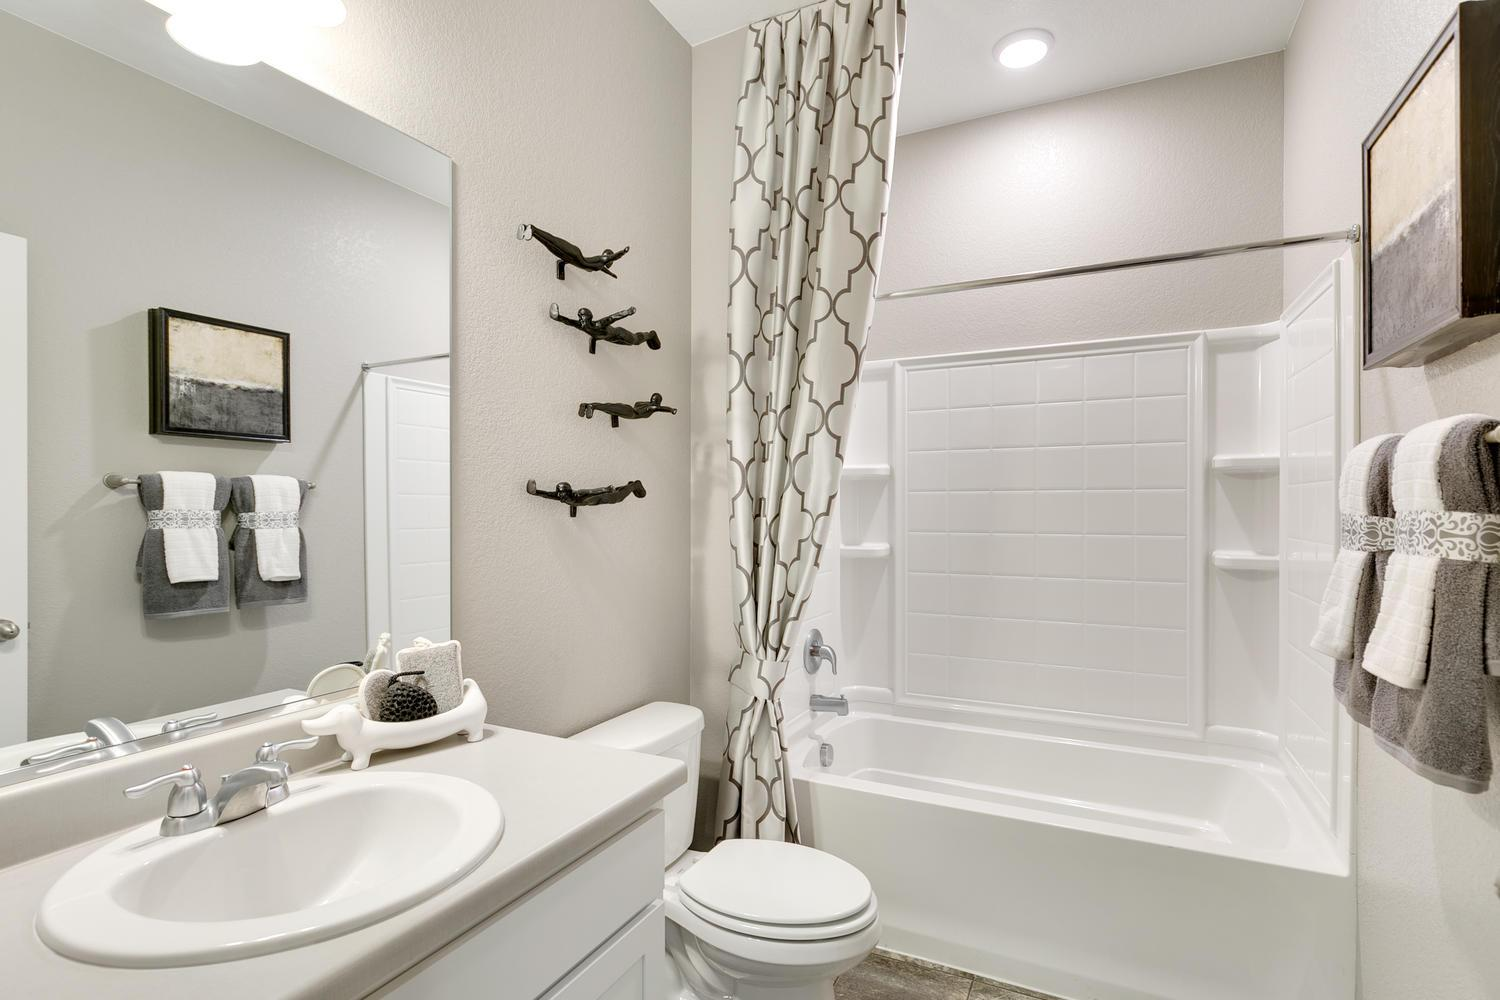 Bathroom featured in the CALI By D.R. Horton in Denver, CO